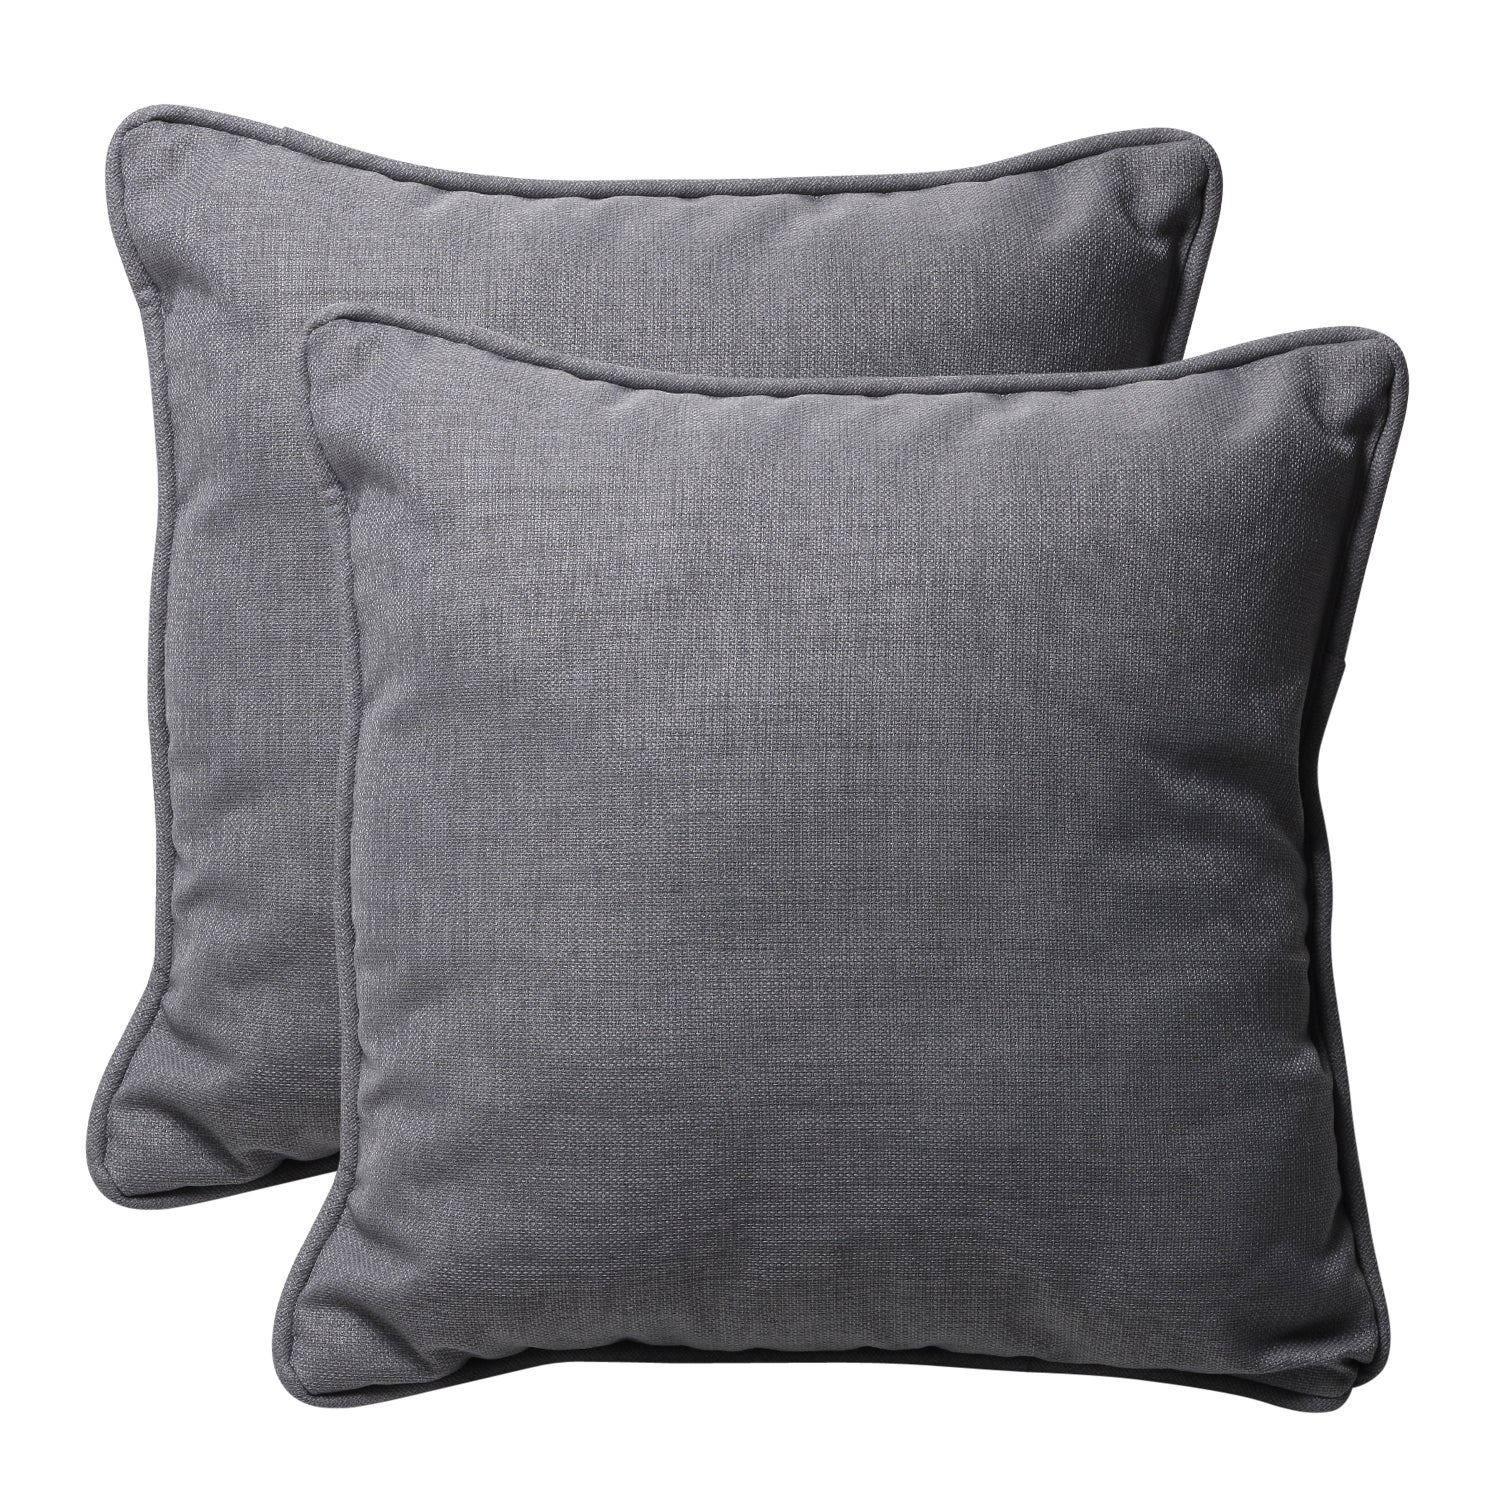 Decorative Grey Textured Solid Square Outdoor Toss Pillows Set of 2 Free Shipping Today